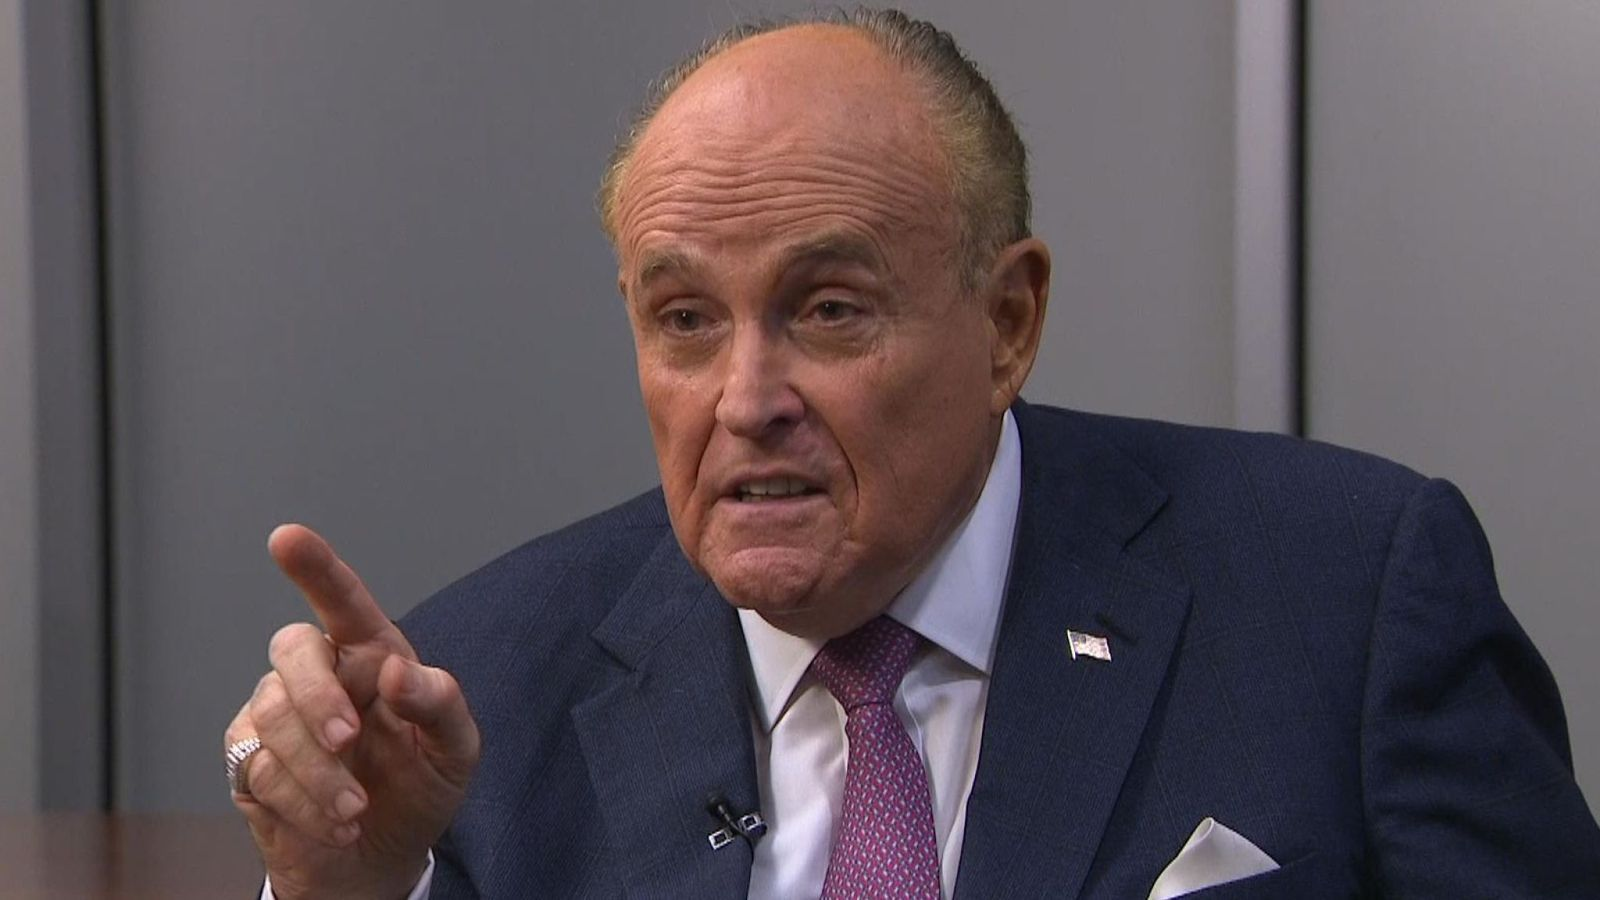 Rudy Giuliani Trump Lawyer Calls Russia Inquiry Team Unethical Slimy Prosecutors Rudy Giuliani Team S Presidential Pardon